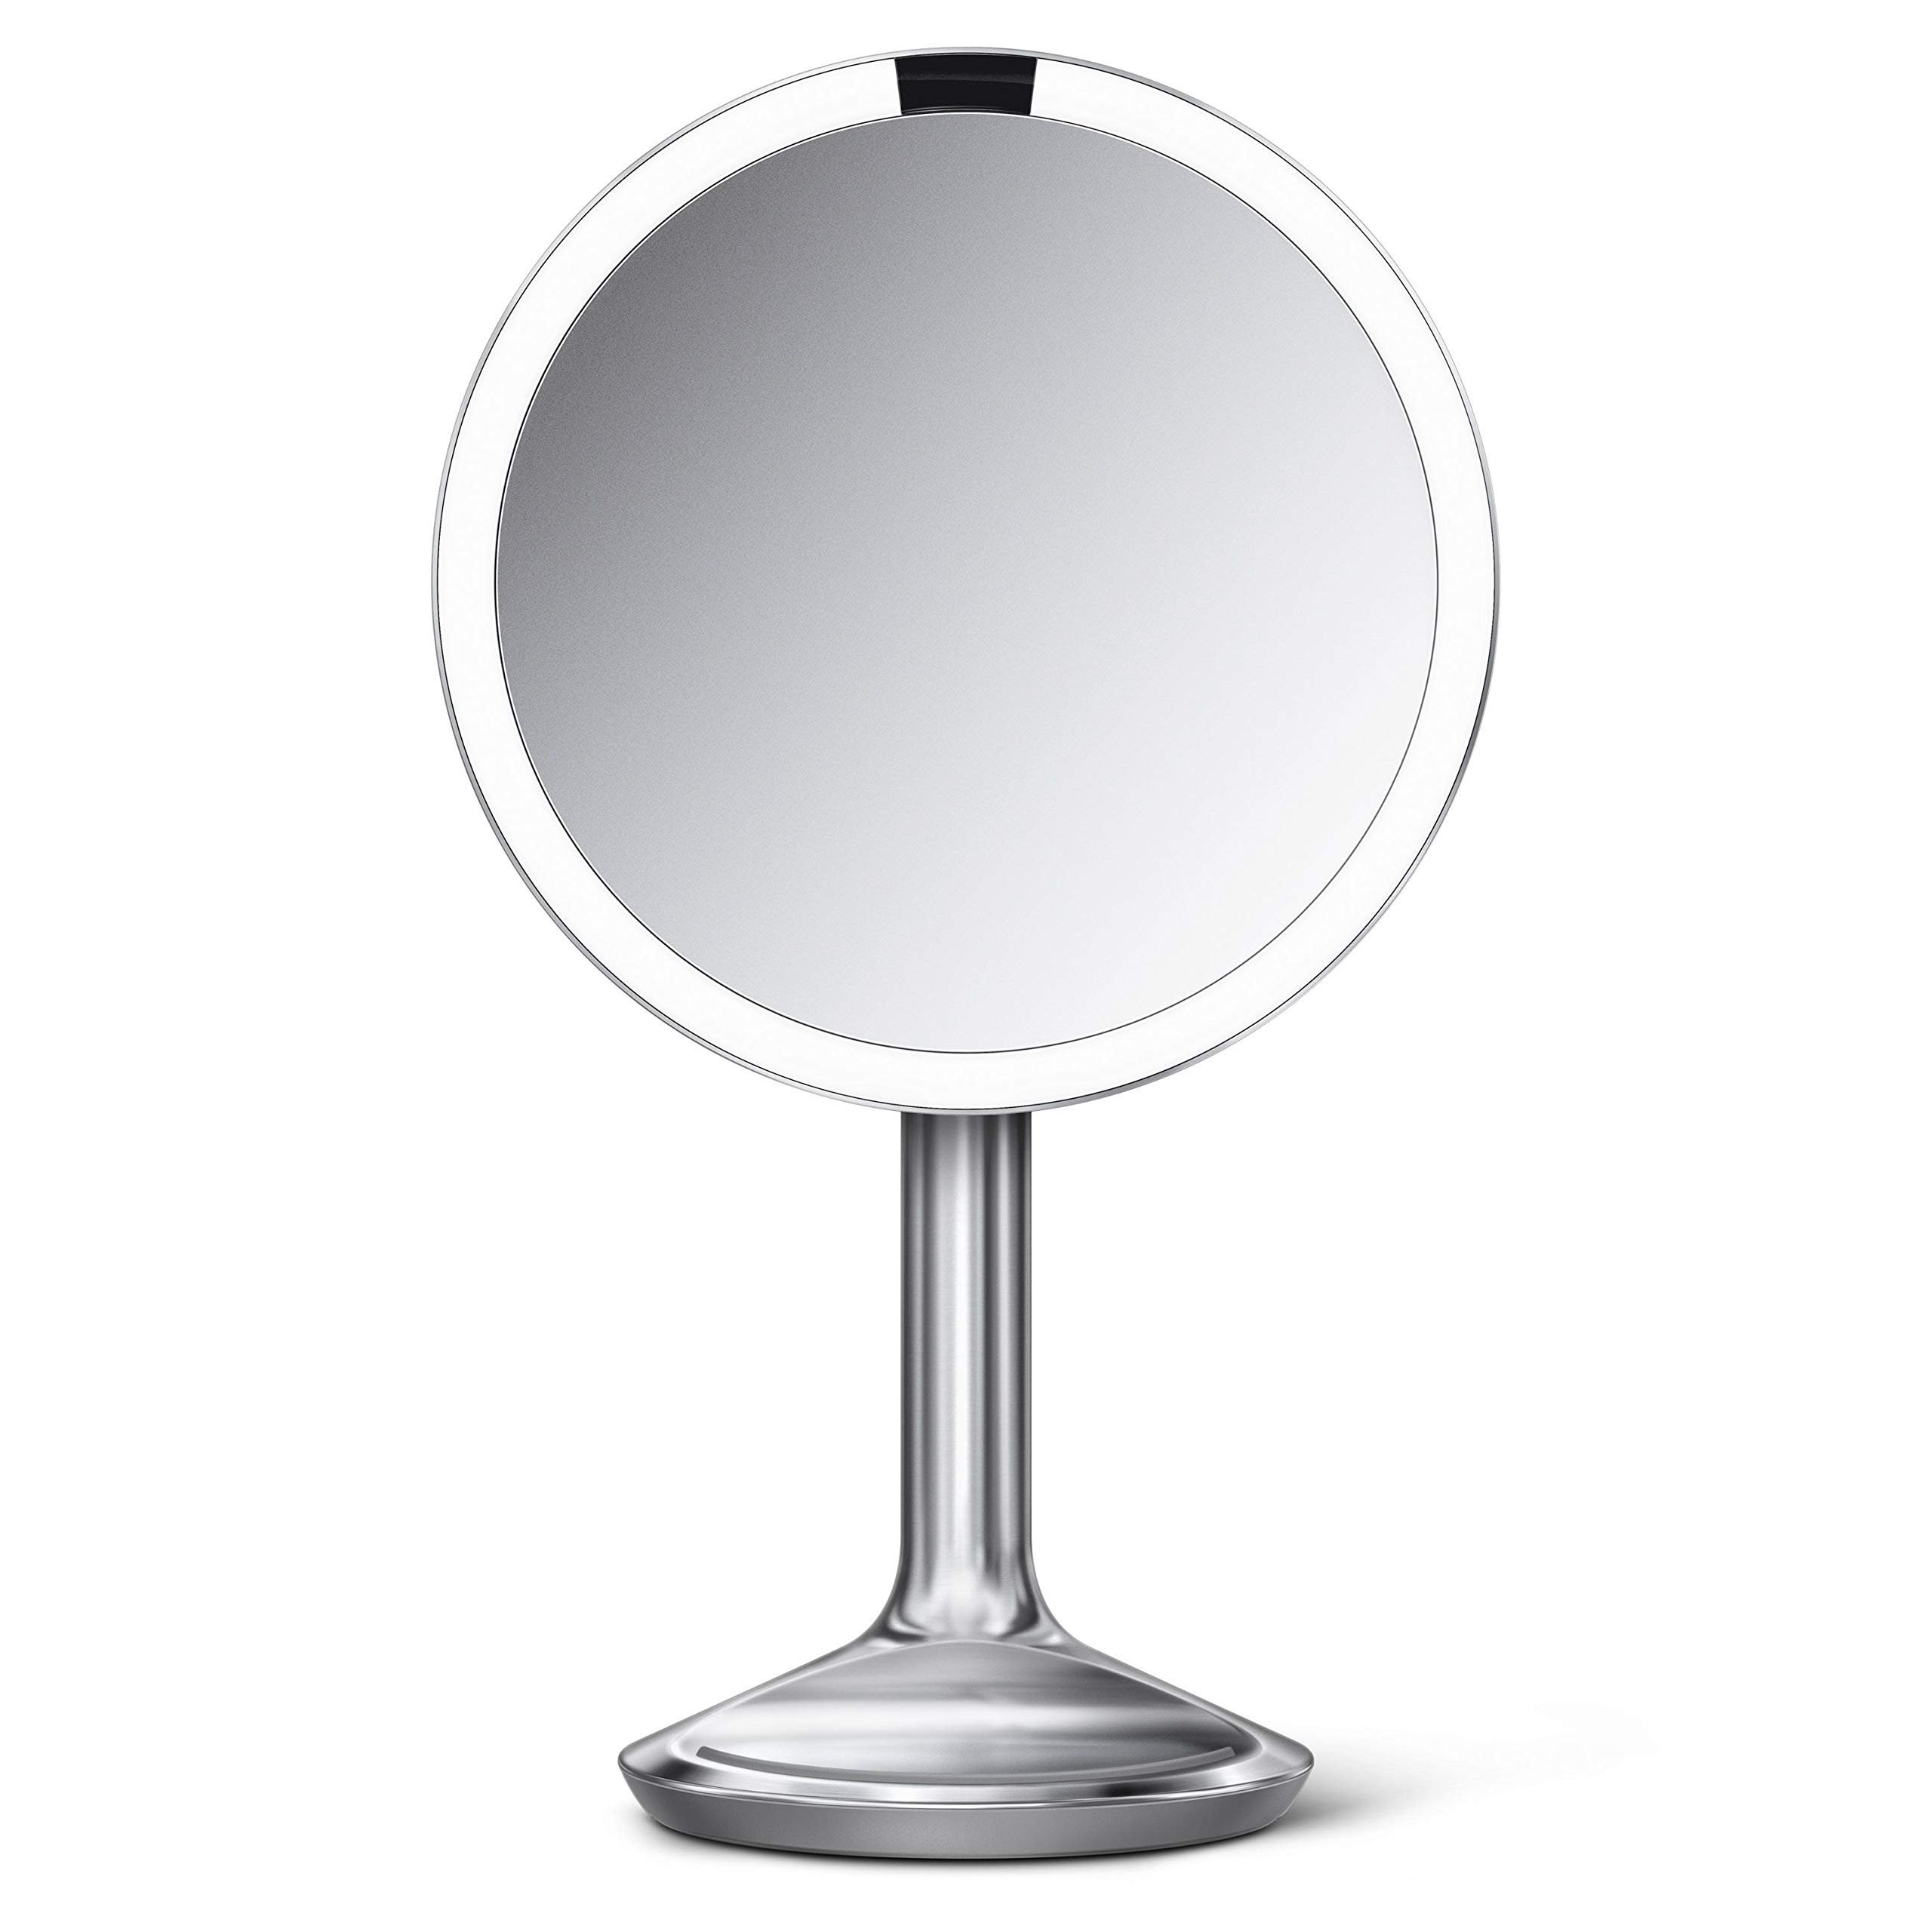 simplehuman Sensor Lighted Makeup Vanity Mirror SE, 8'' Round, 5X Magnification, Stainless Steel, Brushed by simplehuman